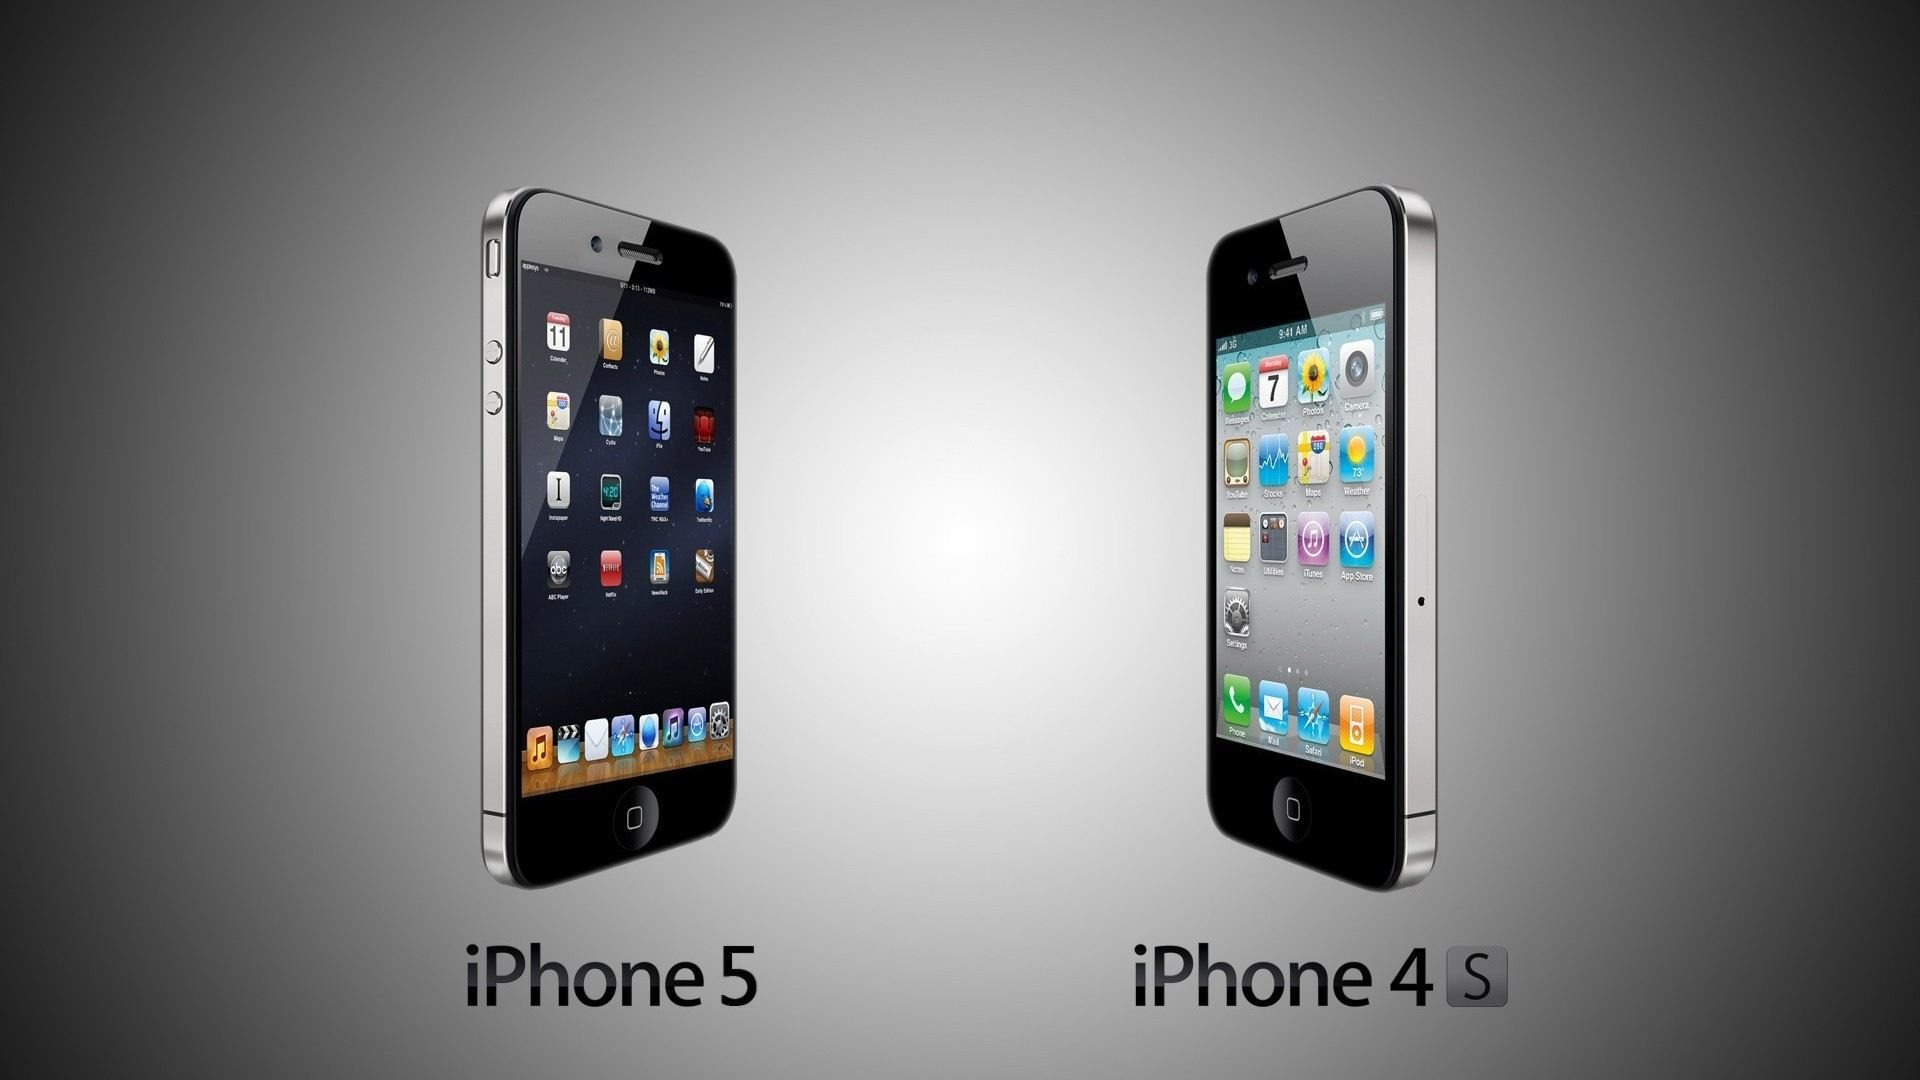 iPhone 5 vs iPhone 4S   High Definition Wallpapers   HD wallpapers 1920x1080